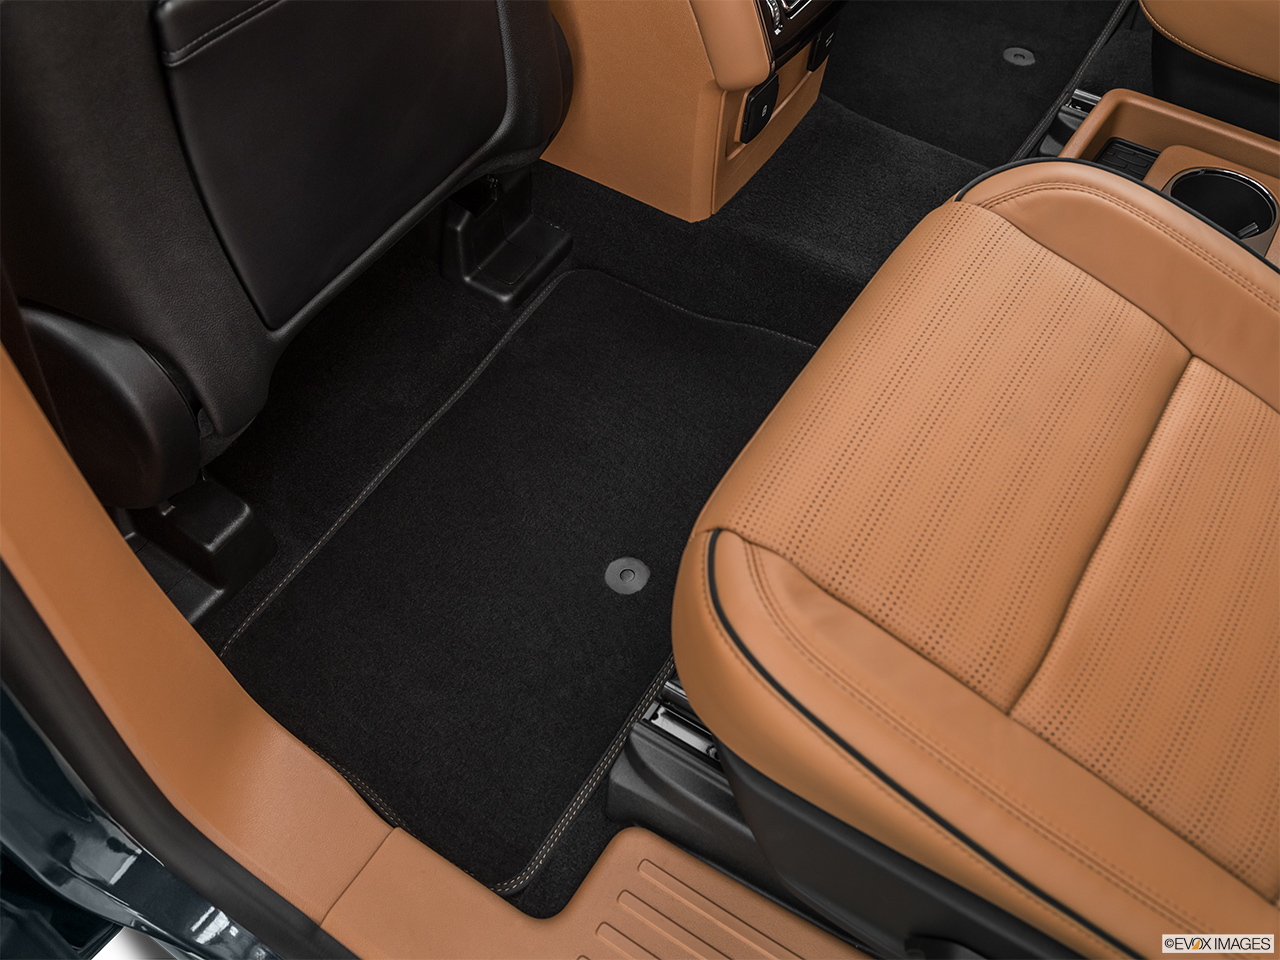 2020 Lincoln Aviator Black Label Rear driver's side floor mat. Mid-seat level from outside looking in.